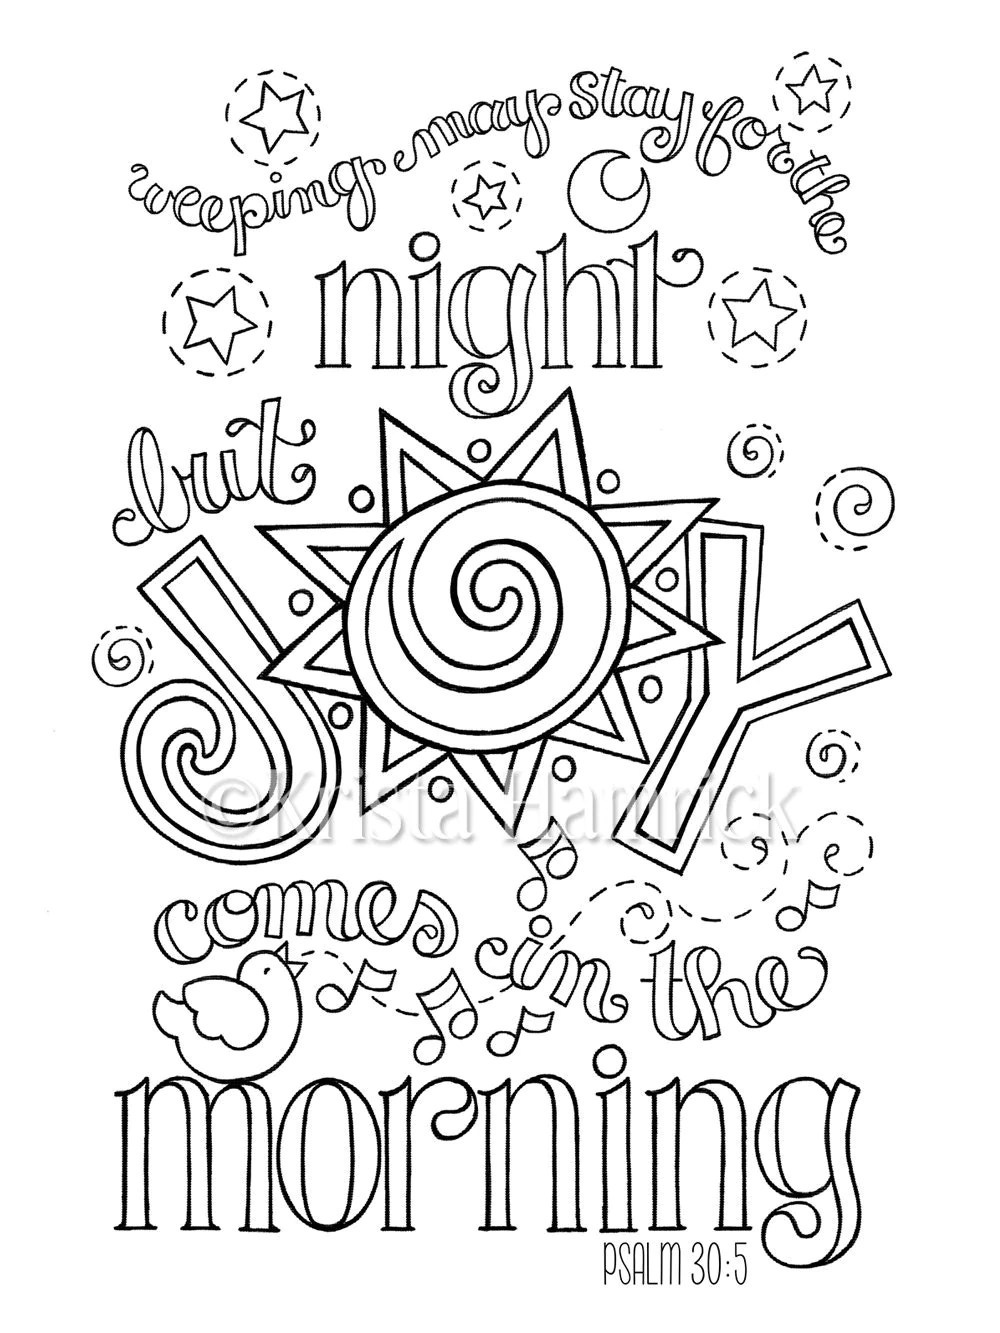 Joy Comes in the Morning coloring page in two sizes: 8.5X11